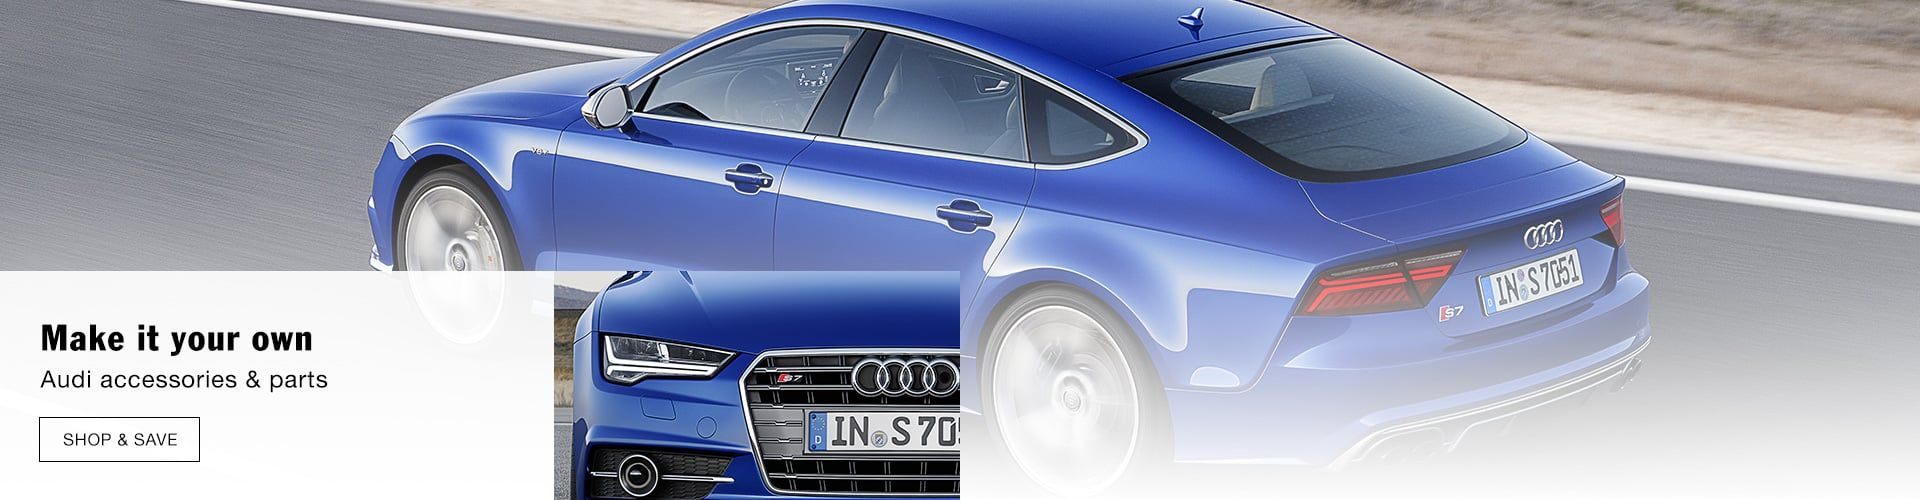 Quality OEM Parts and Accessories for your Audi Car or SUV ...